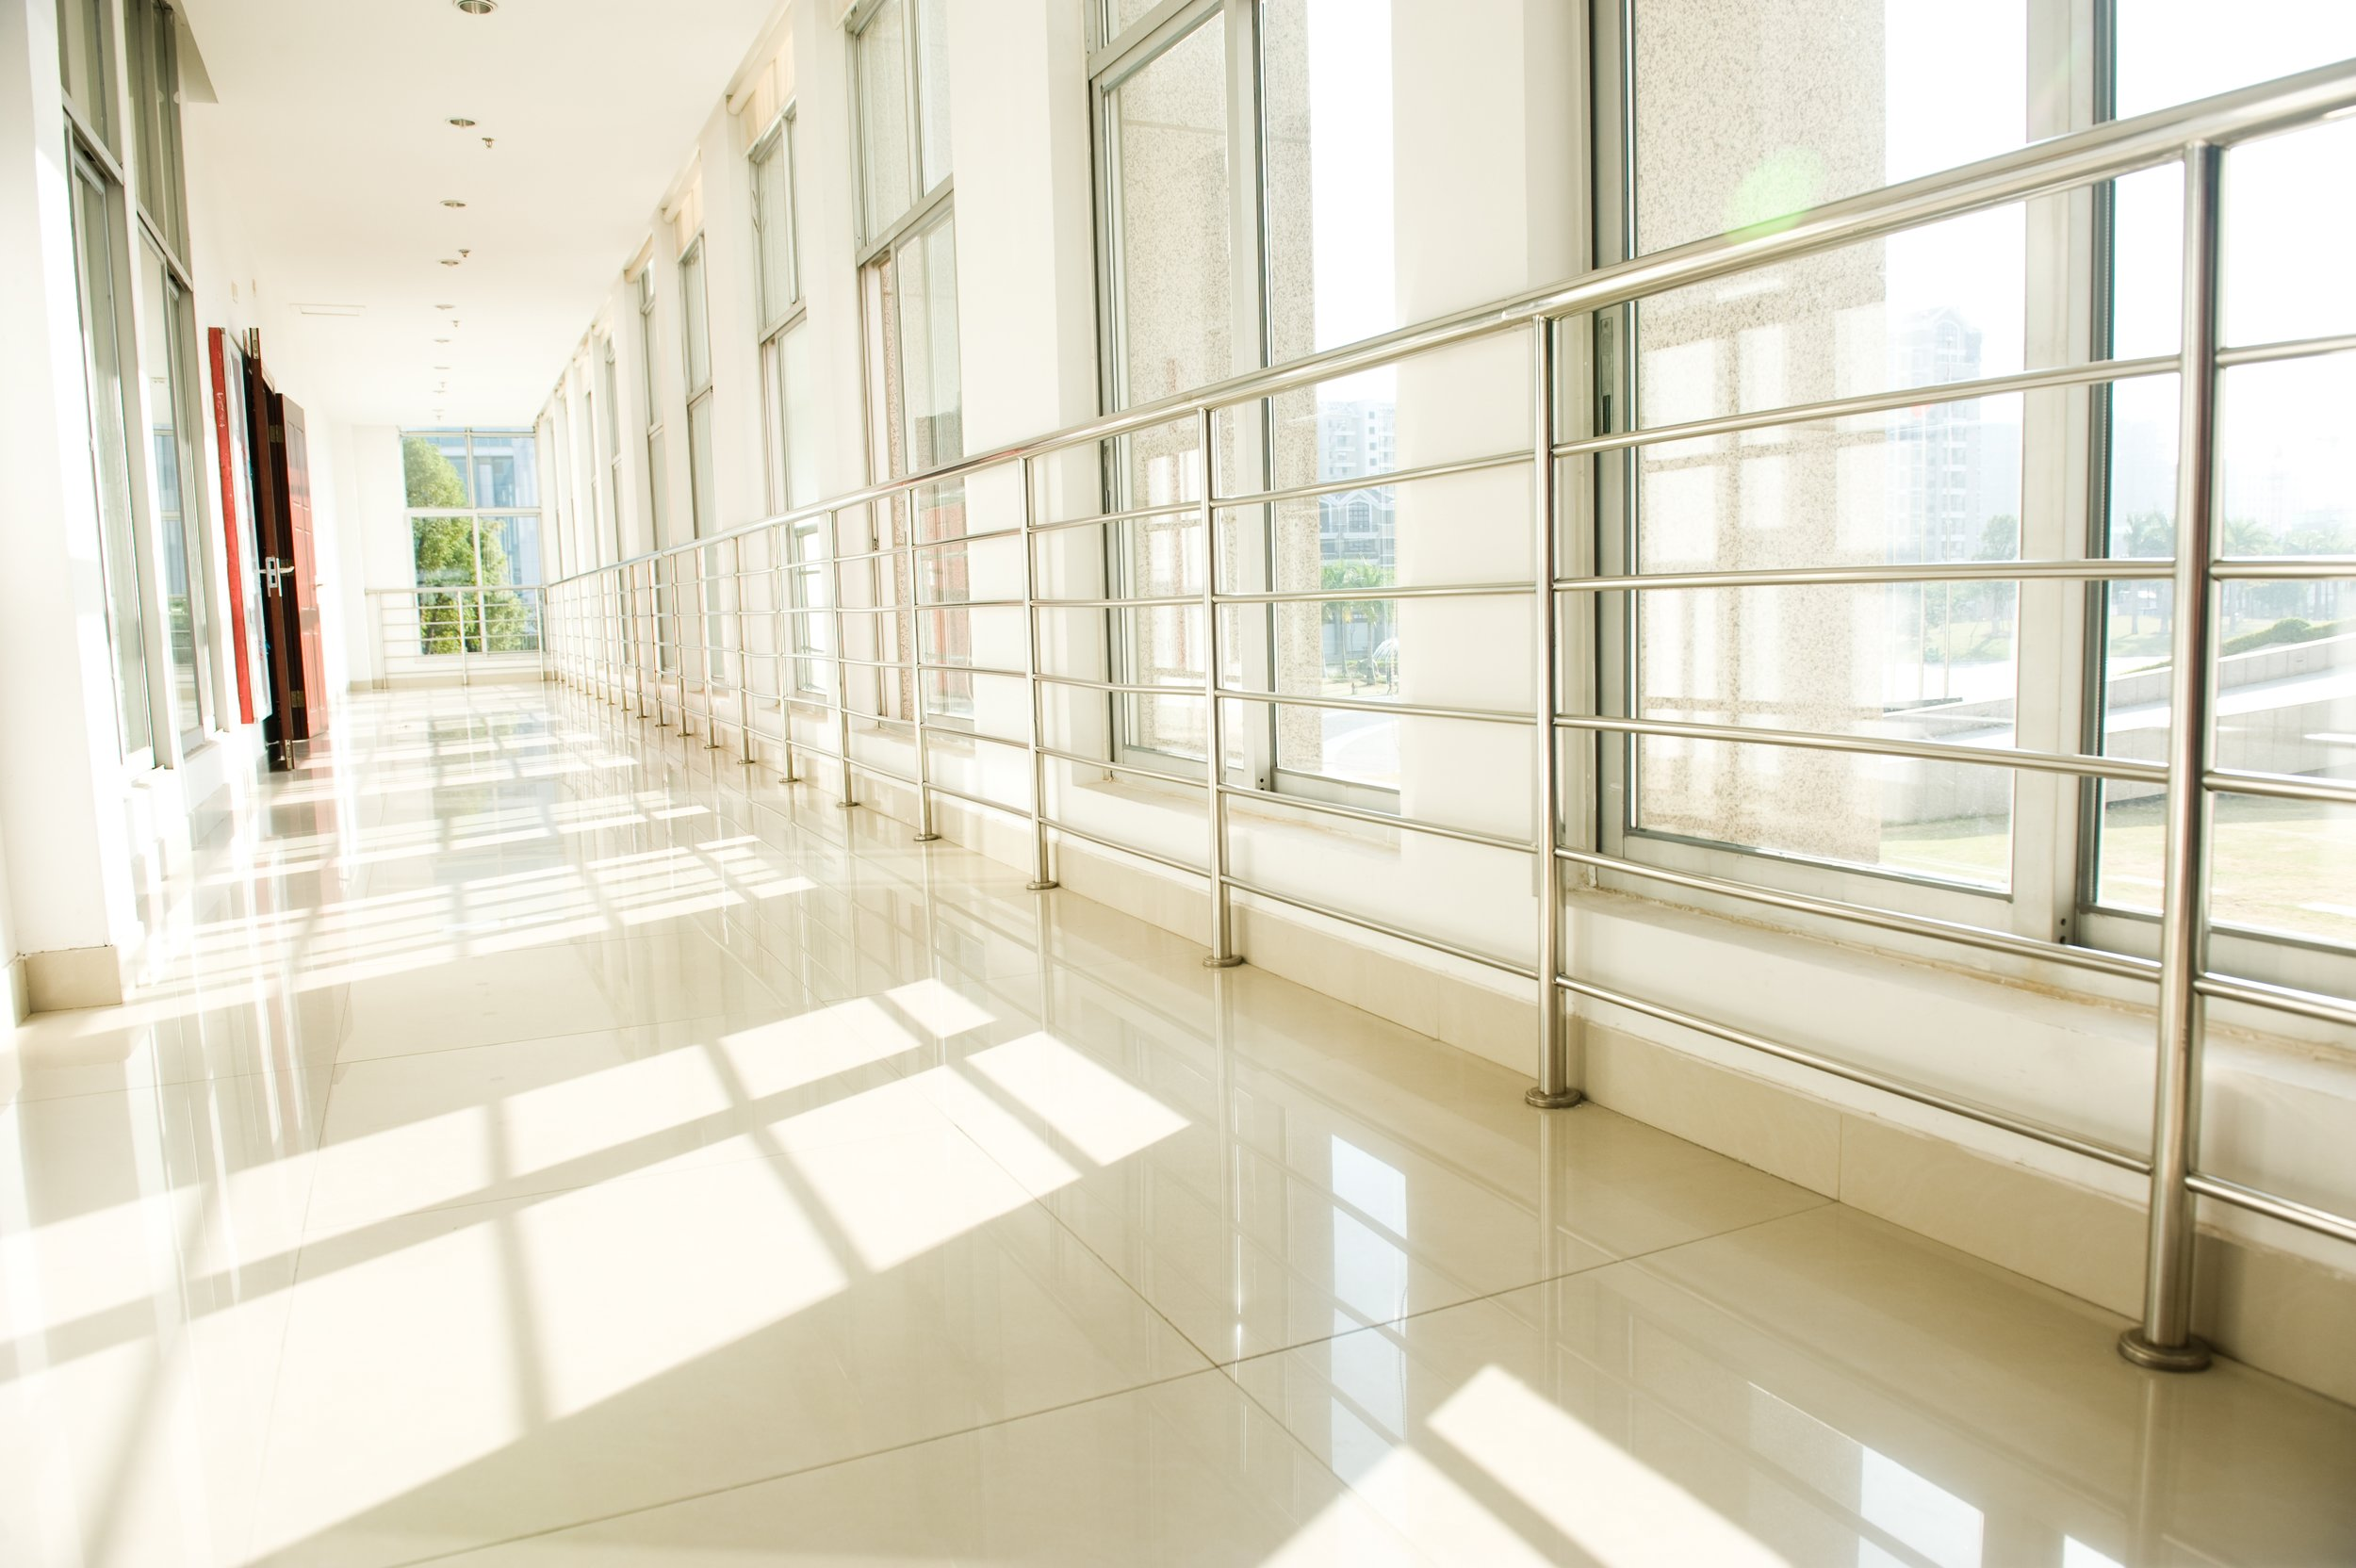 Let A Mug You Can Trust electrify your Vinyl Composition Tile (VCT) floor with our deep cleaning and wet look shine floor coating and polishing. We will help your business look bright and cheery to project a positive image to your customers.